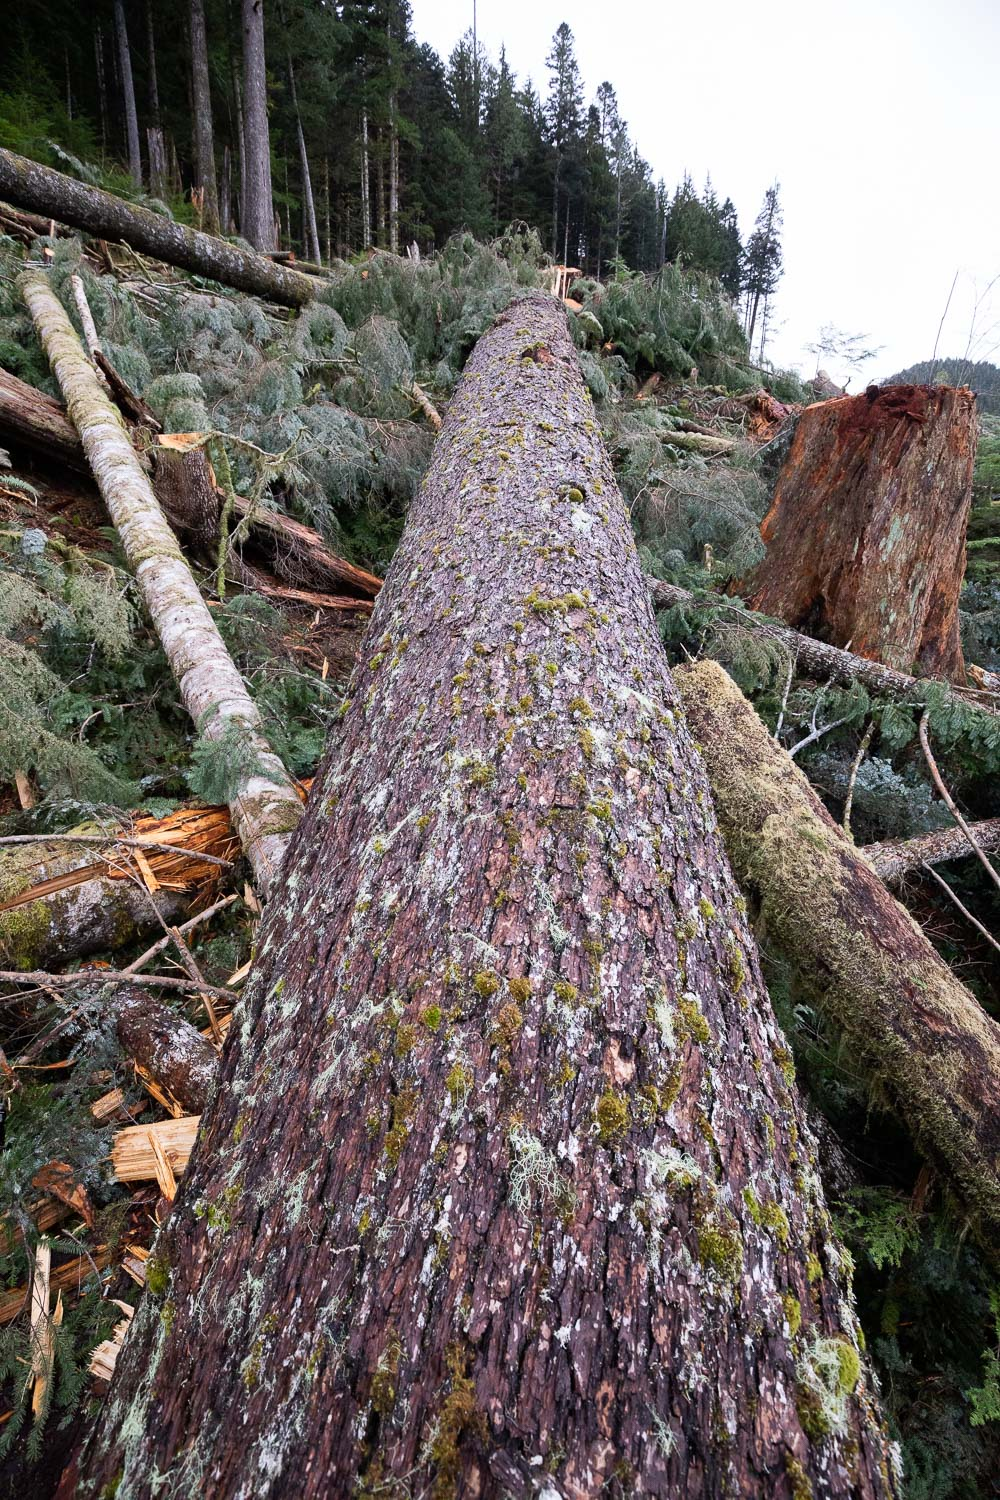 An extremely rare old-growth Douglas-fir tree (1% remain) measuring 6ft wide cut down.